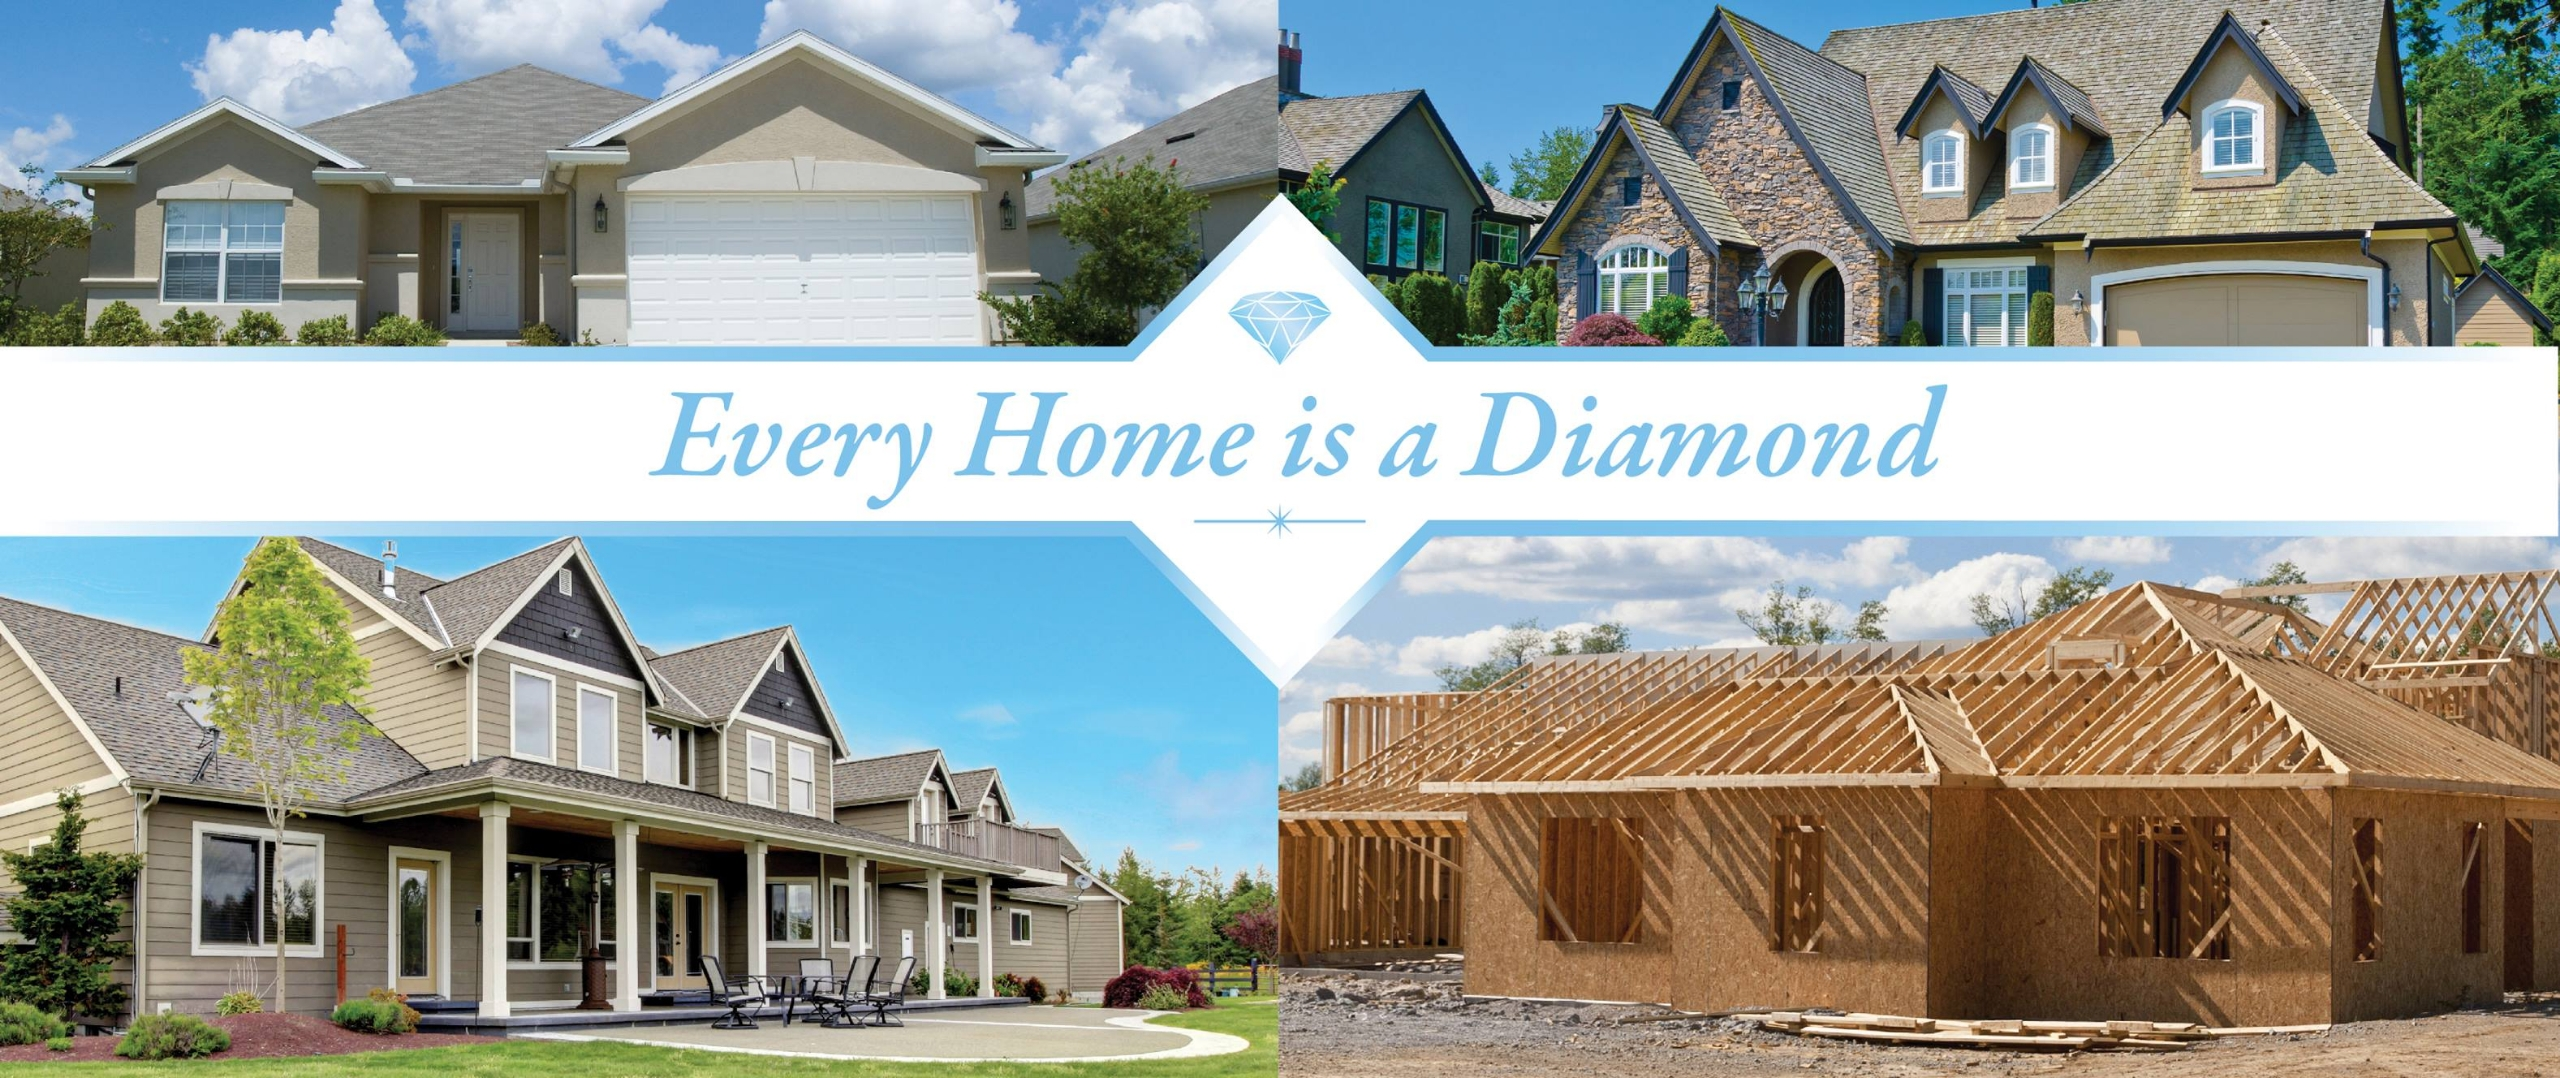 The Diamond Group Home Inspections Inc. (@tinspectionsinc) Cover Image